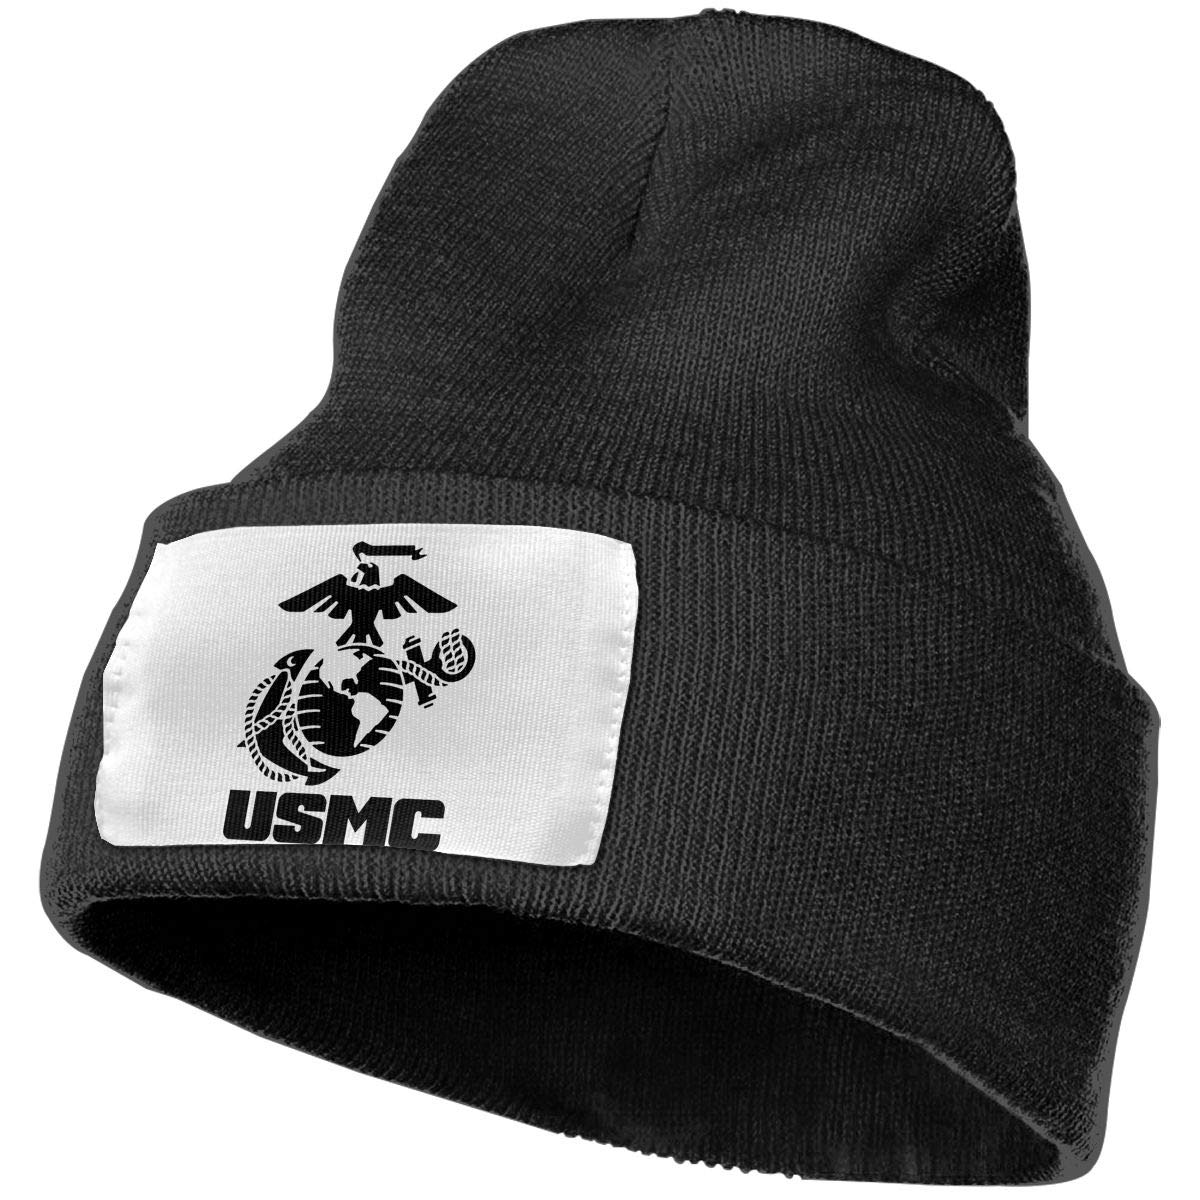 USMC Logo Men/&Women Warm Winter Knit Plain Beanie Hat Skull Cap Acrylic Knit Cuff Hat